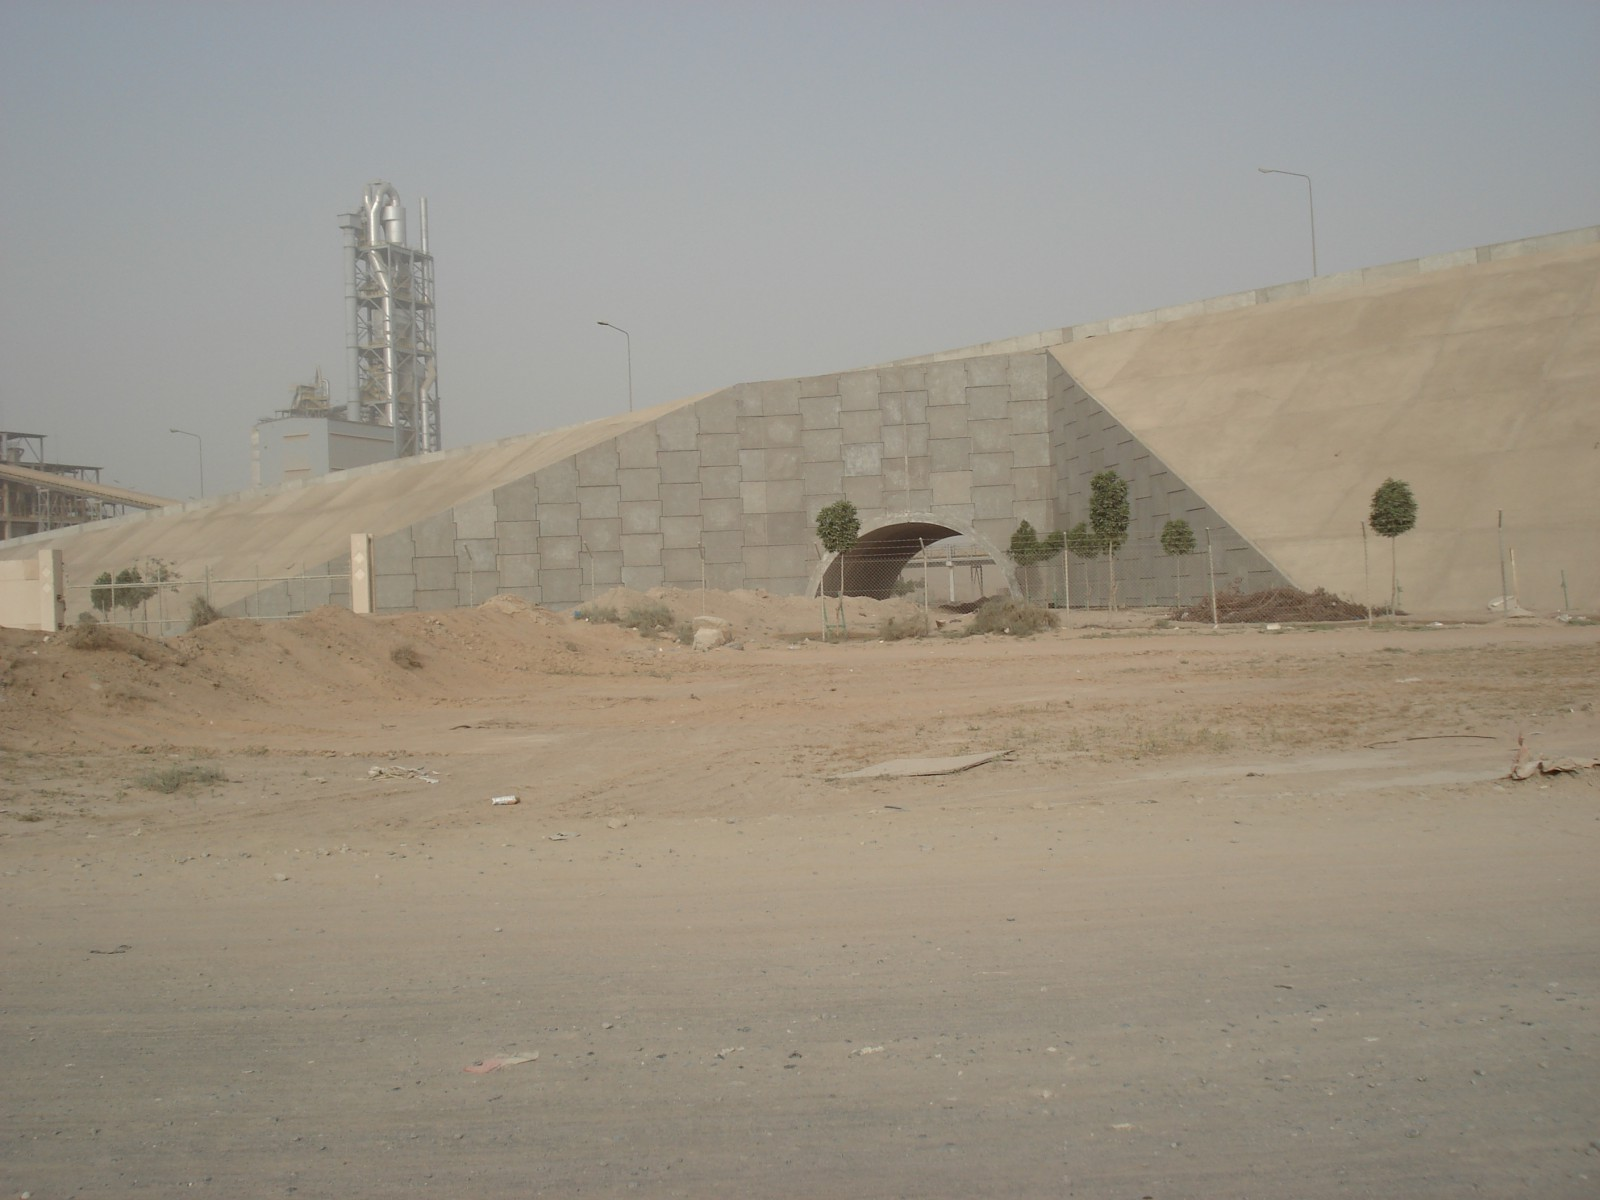 Sharjah Cement Factory